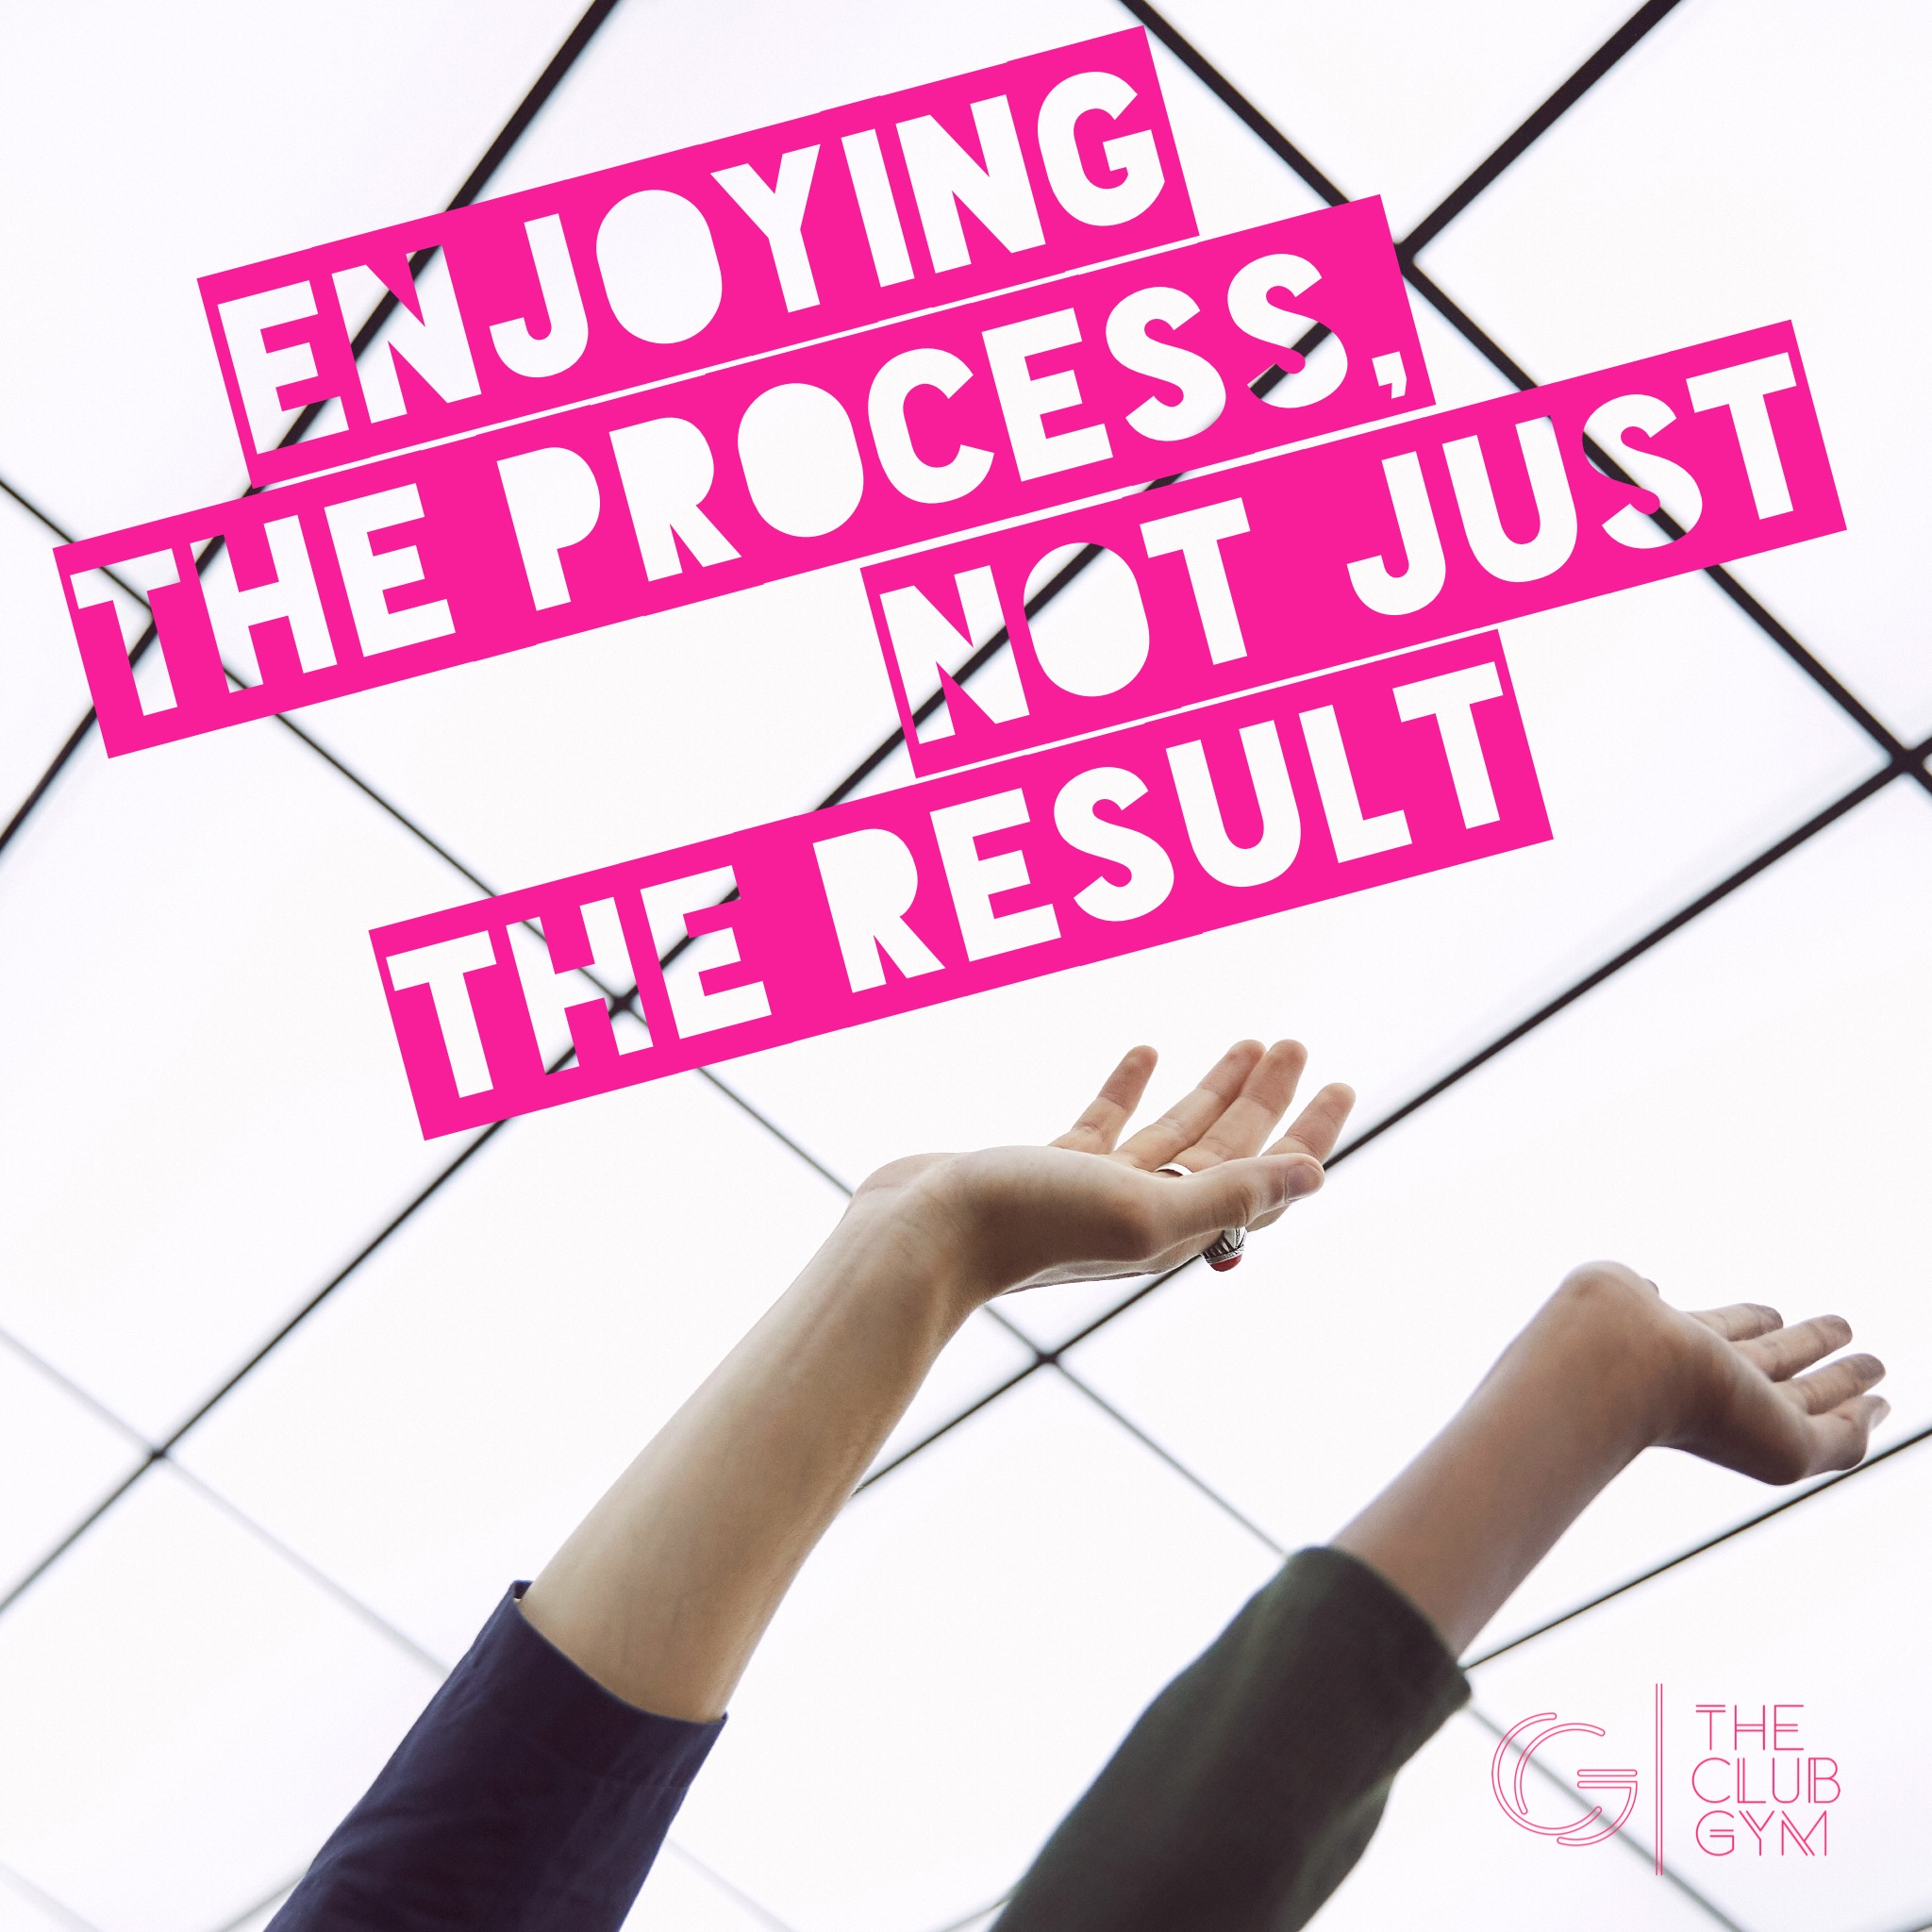 Enjoying the process, not just the result